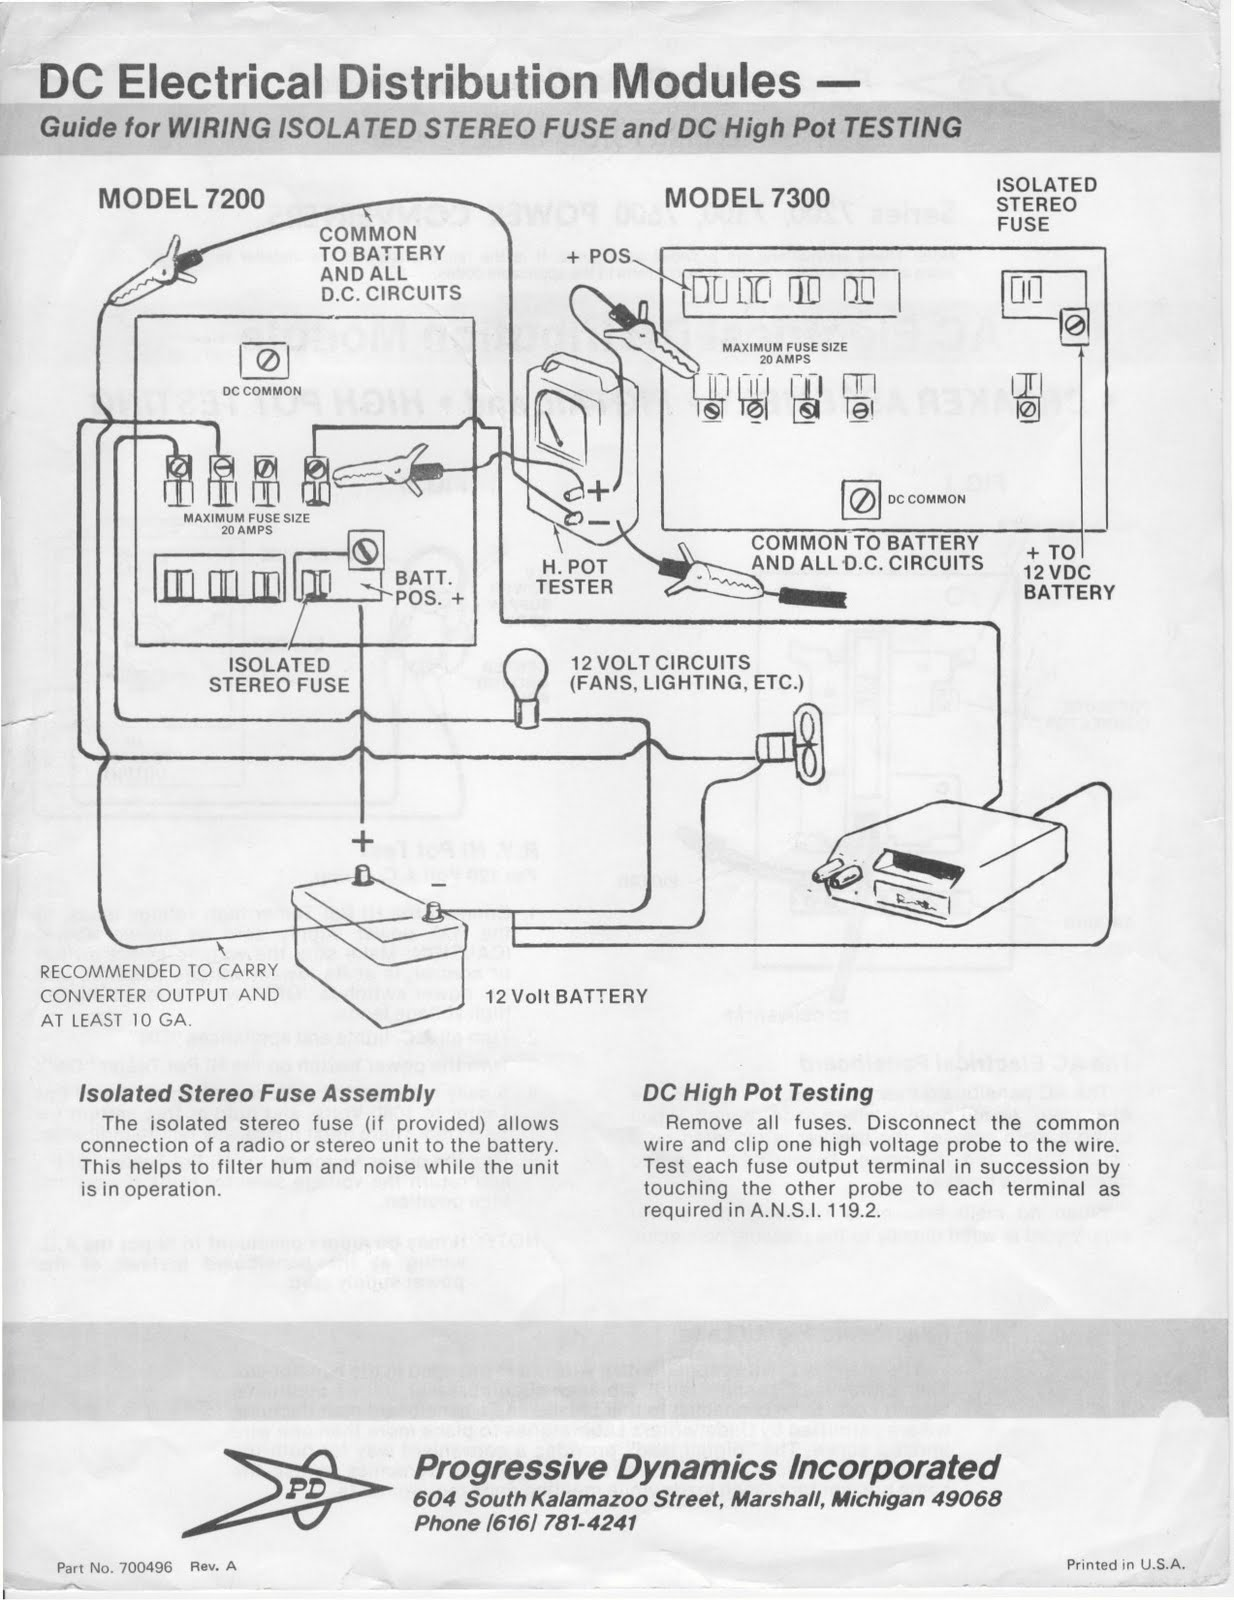 1983 Fleetwood Pace Arrow Owners Manuals 83 Power 1985 Wiring Diagram Posted By Vintage Travel Trailers At 330 Pm